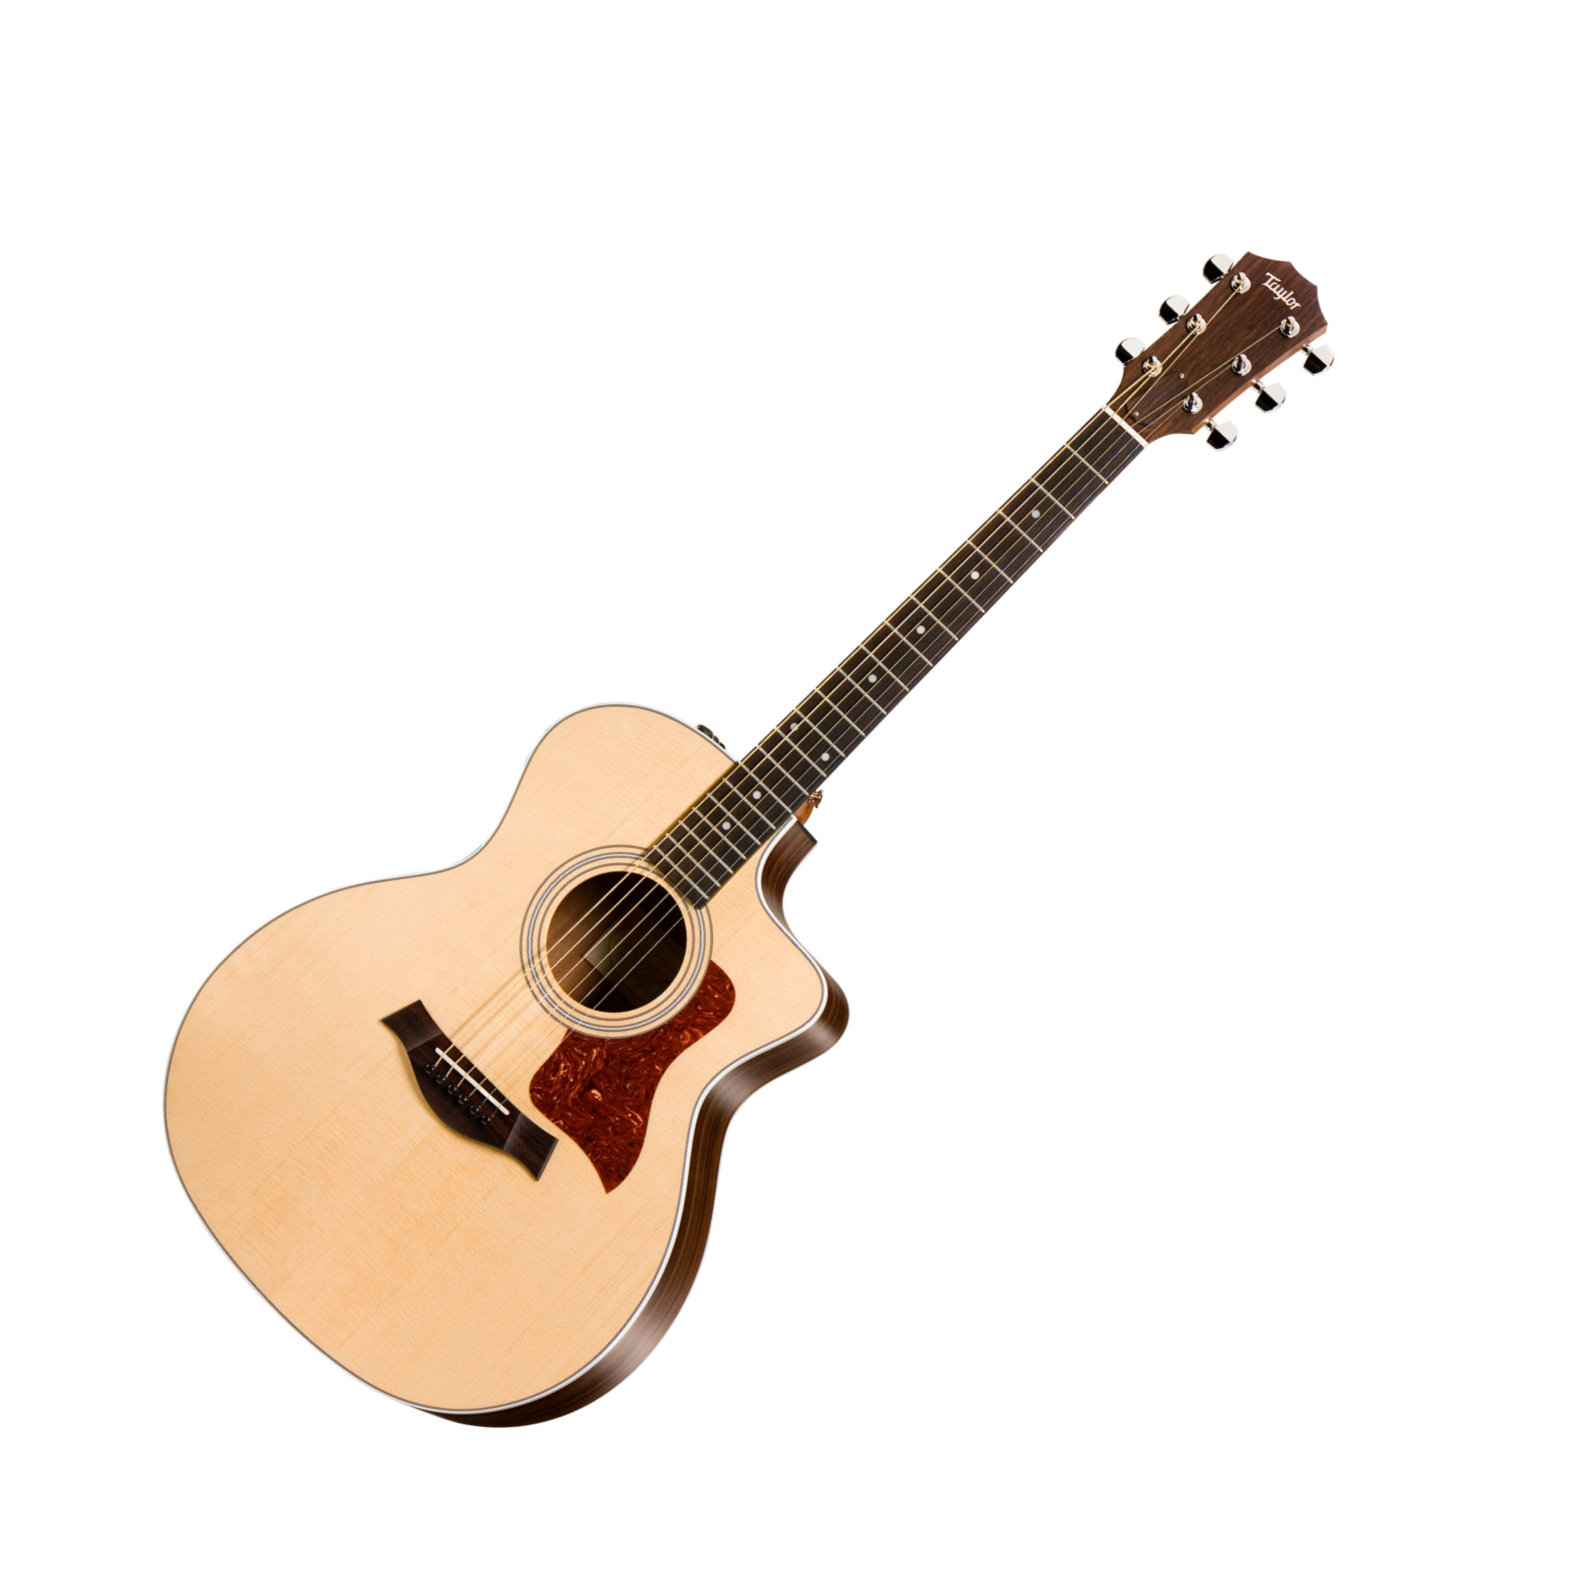 taylor 214ce acoustic electric guitar with gig bag the music complex ri. Black Bedroom Furniture Sets. Home Design Ideas